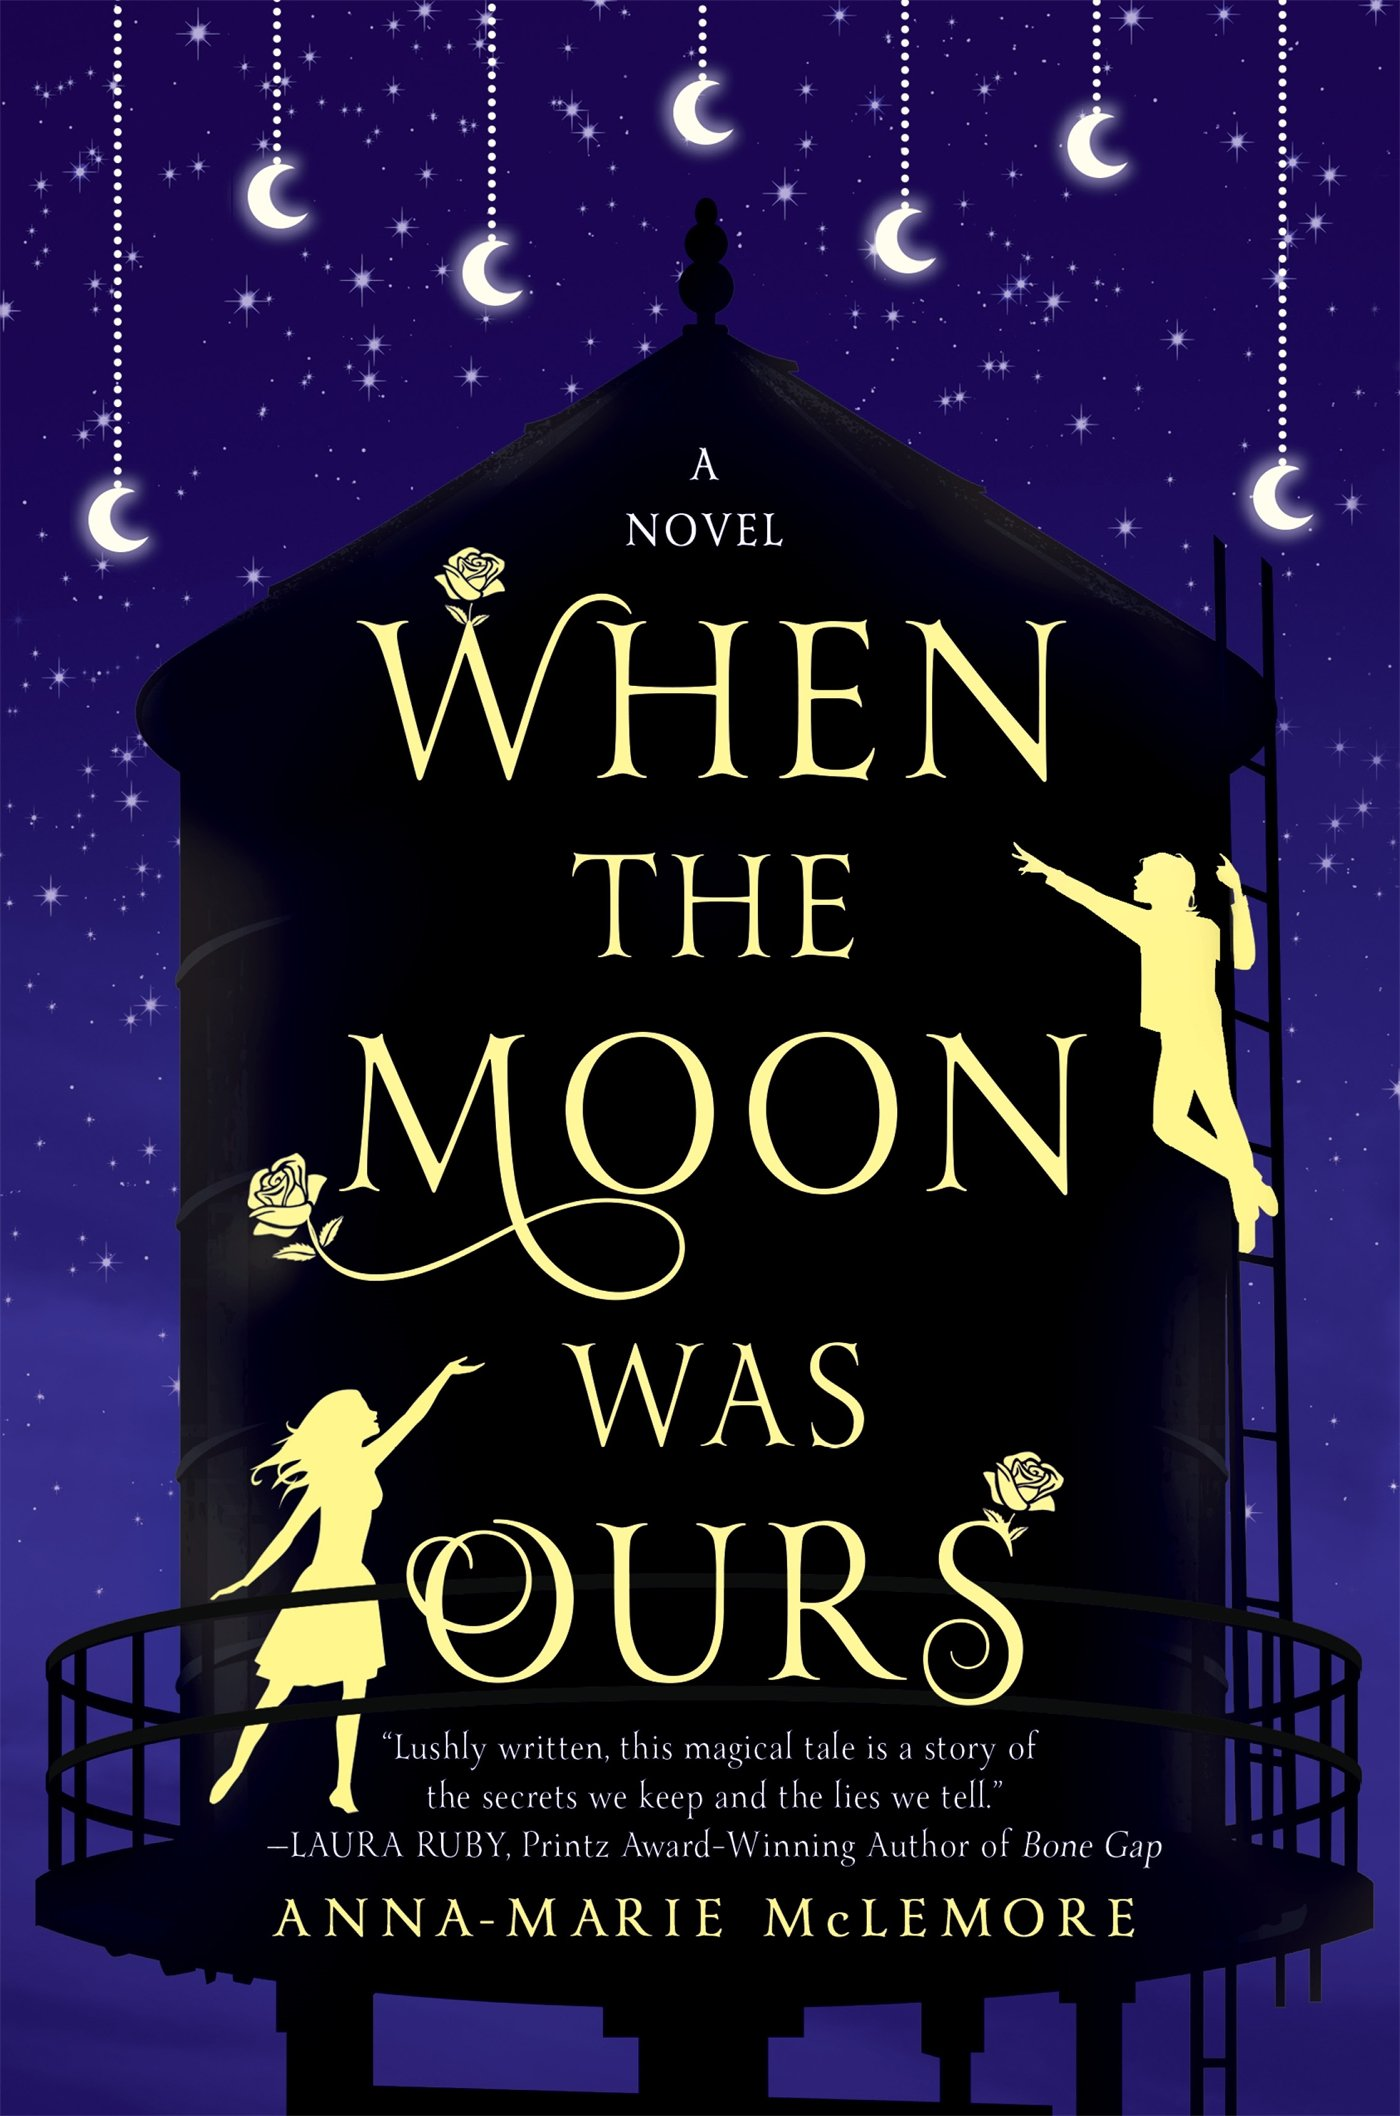 Amazon.com: When the Moon Was Ours: A Novel (9781250058669): McLemore,  Anna-Marie: Books